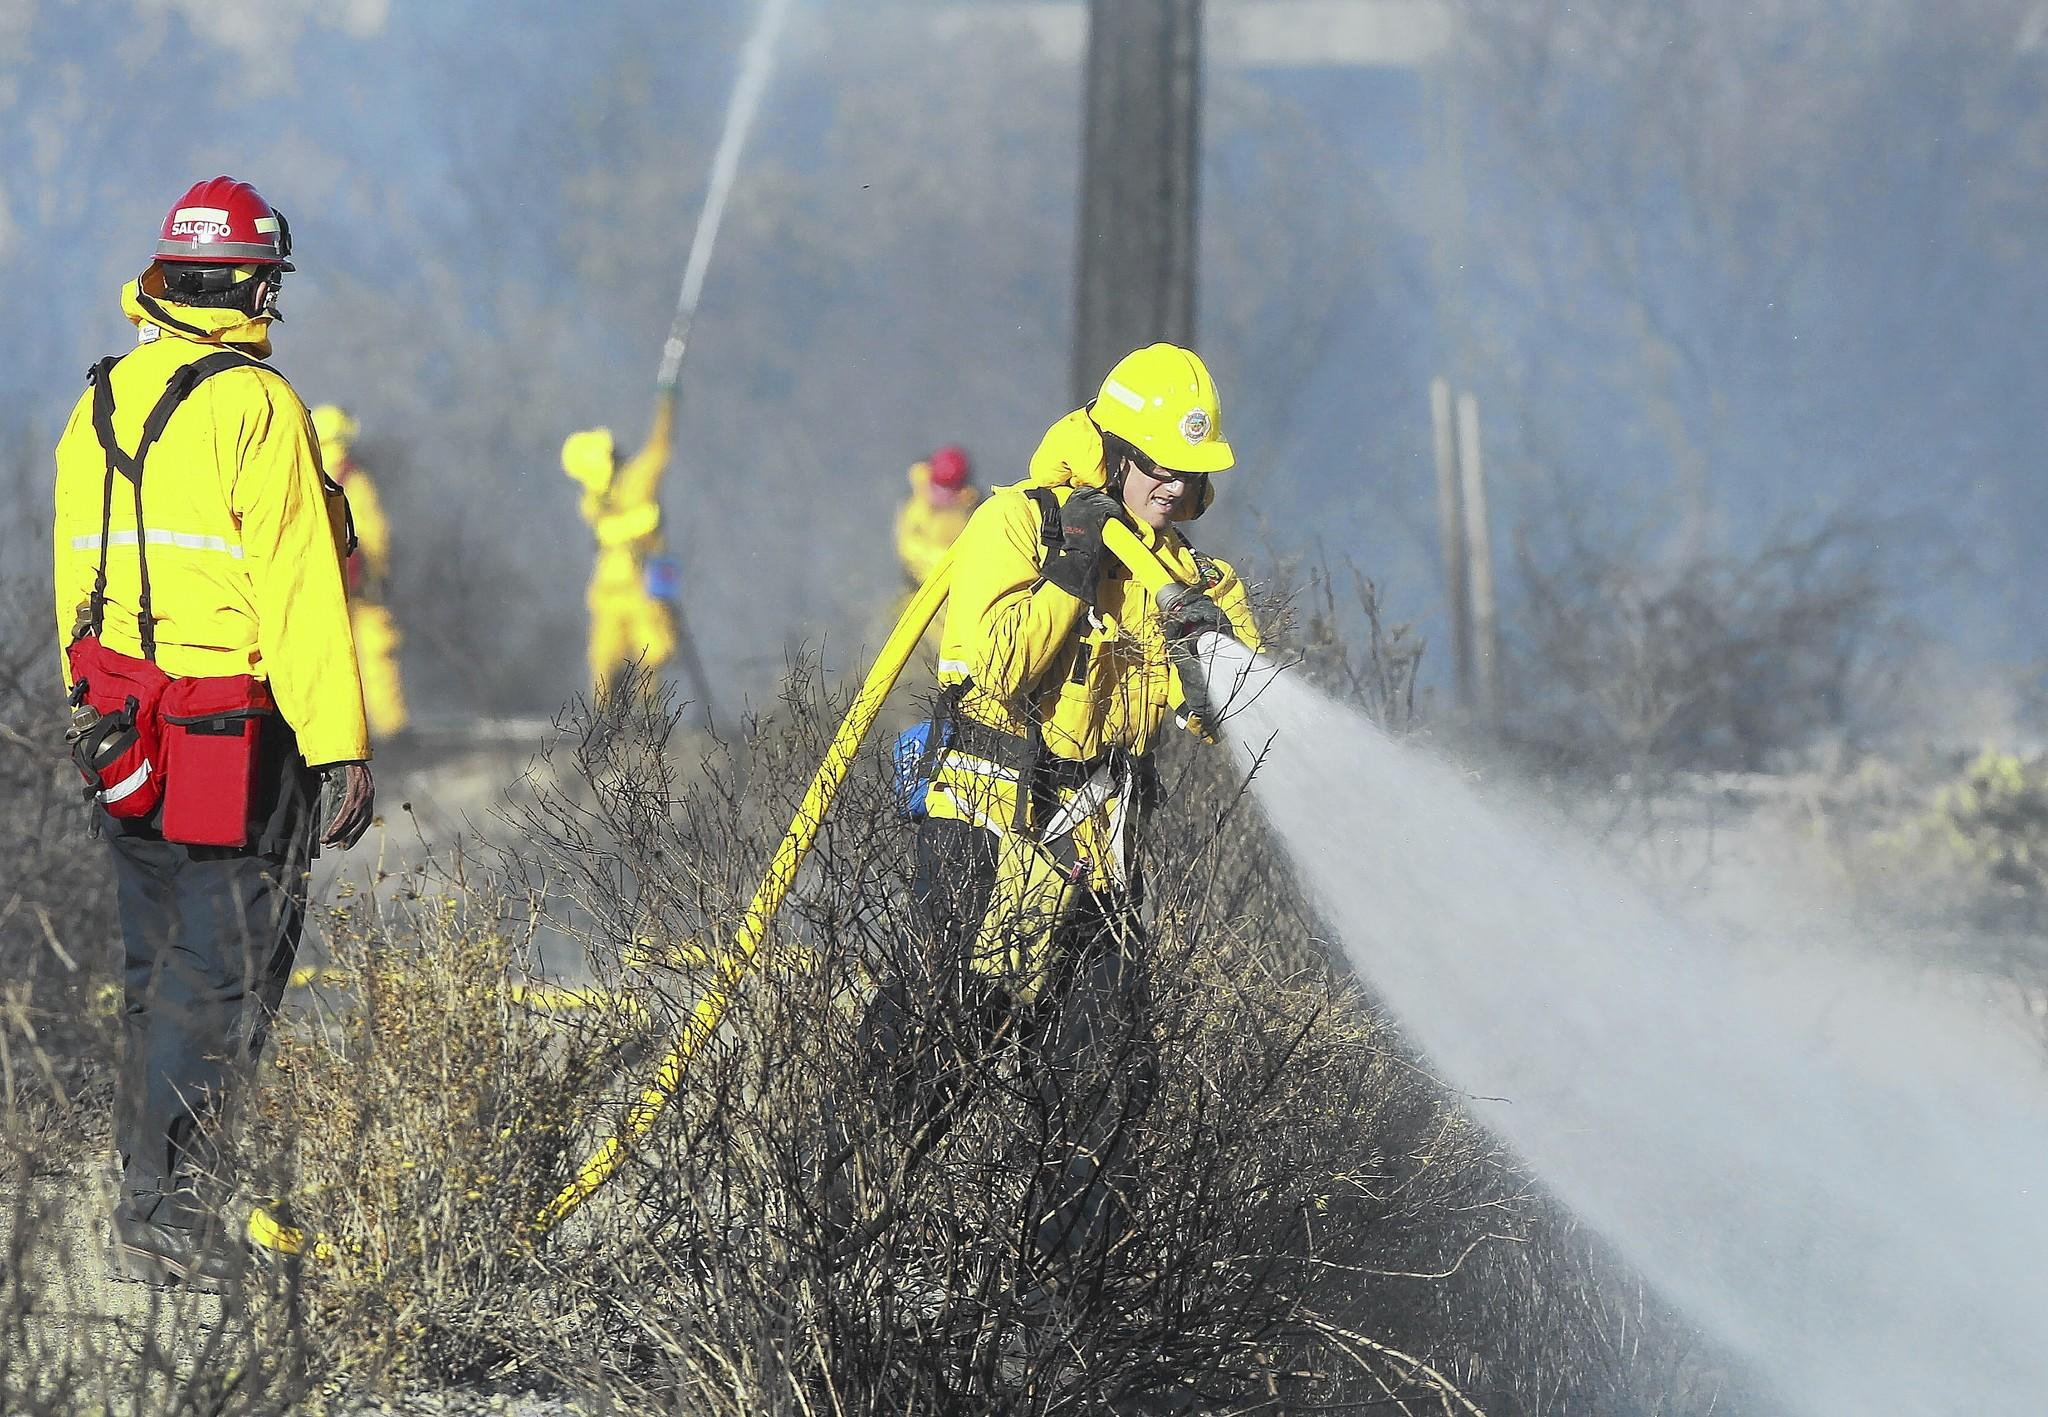 An Orange County Fire Authority fire crew douse hot spots in the area where fire broke out in the dense brush near University Blvd behind the Fletcher Jones Motorcars Dealership in Newport Beach on Wednesday.